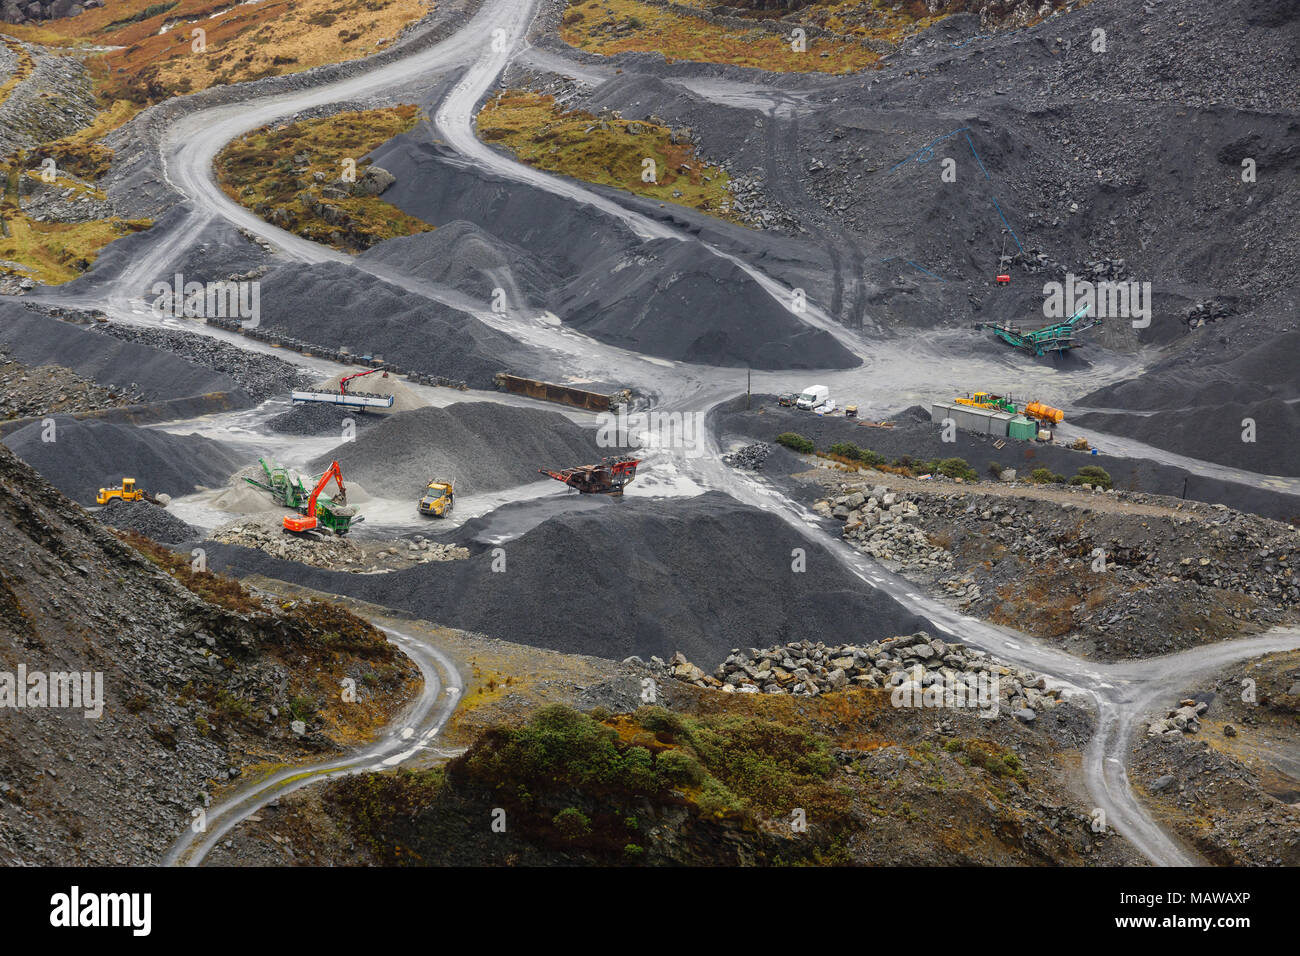 mining and quarrying photos mining and quarrying images alamy. Black Bedroom Furniture Sets. Home Design Ideas